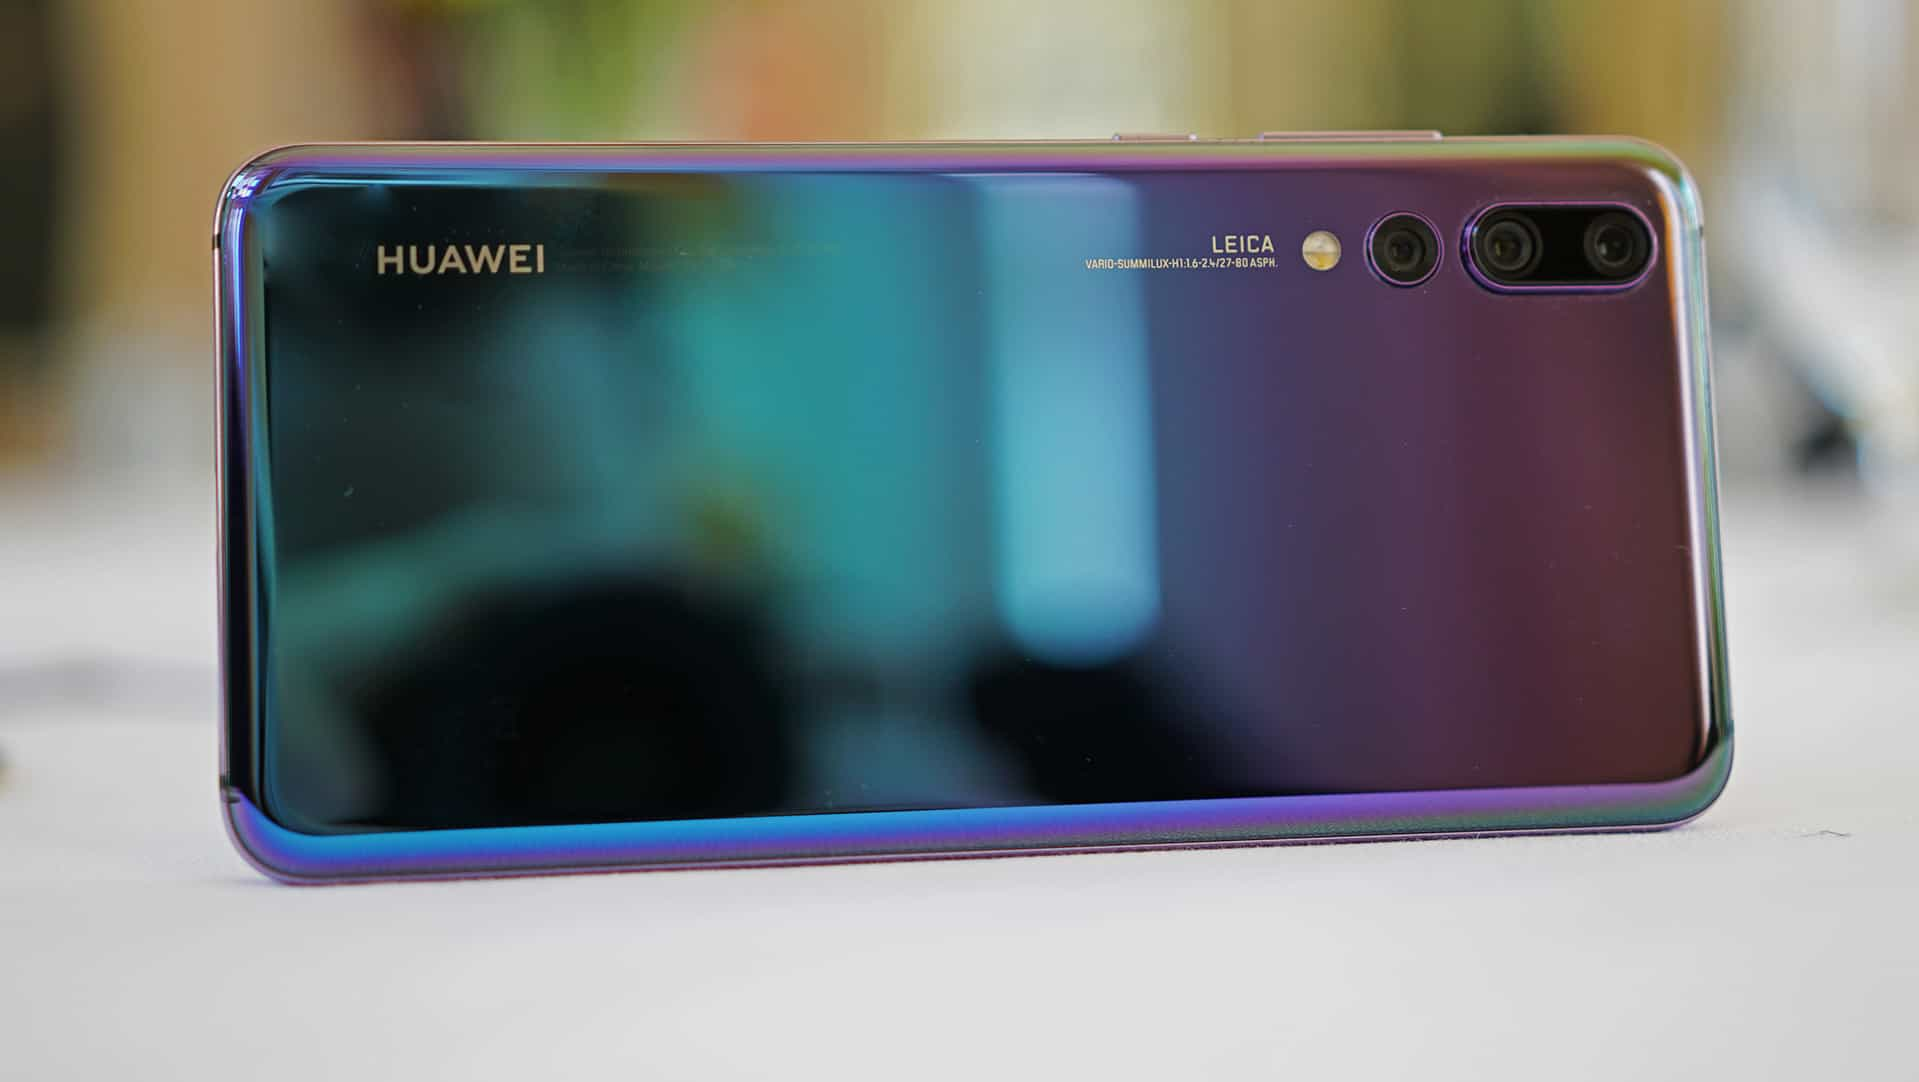 huawei-p20-pro-on-table